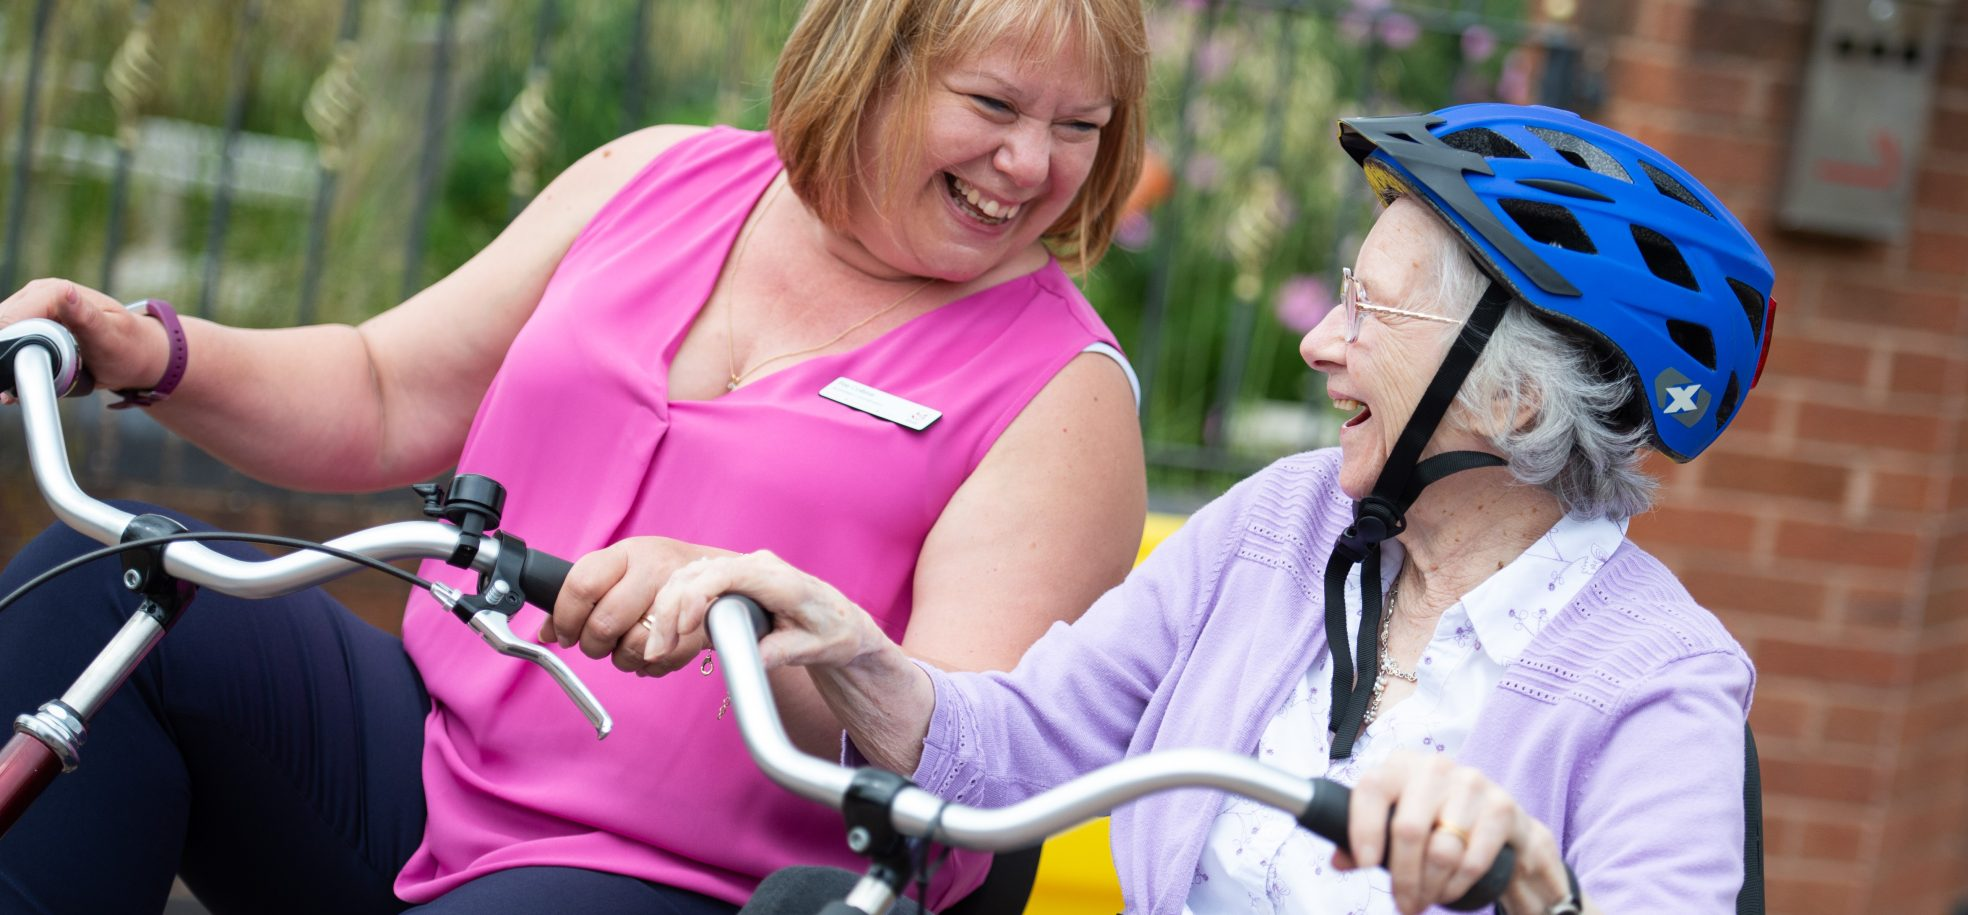 Staff member and resident riding a bike together at Devonshire Court, Leicester.